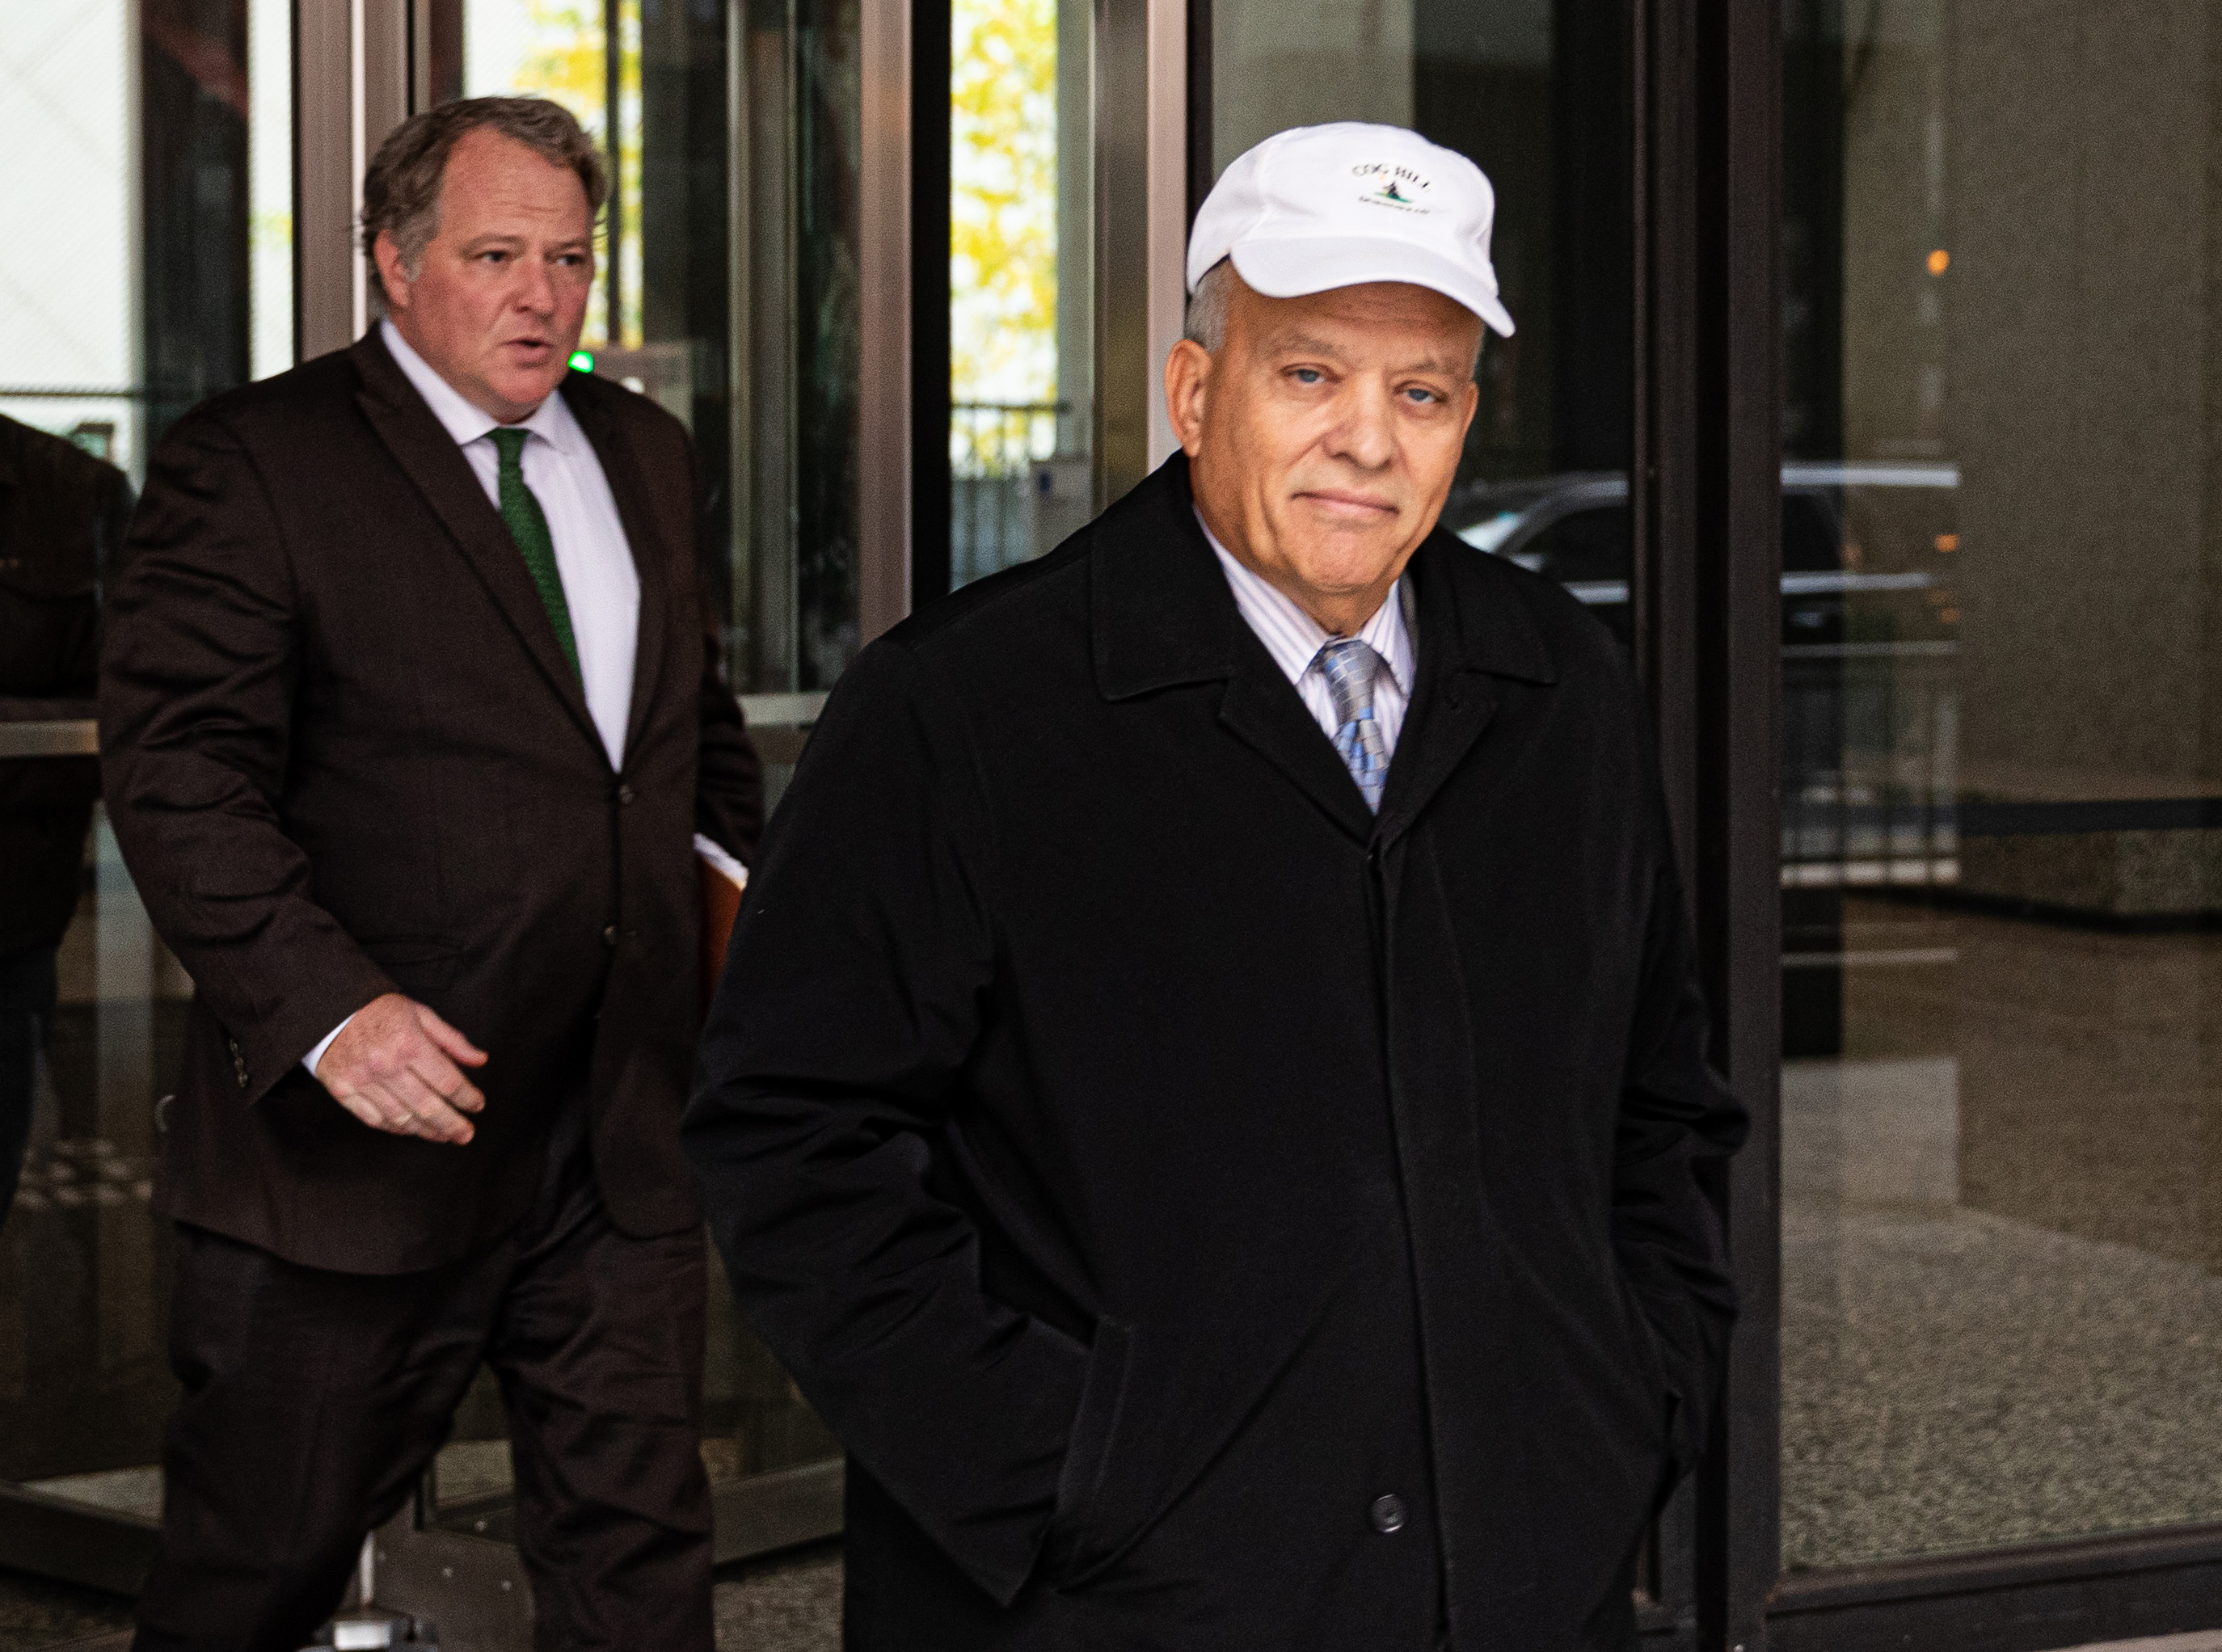 State Rep. Luis Arroyo leaves the Dirksen Federal Building in October.